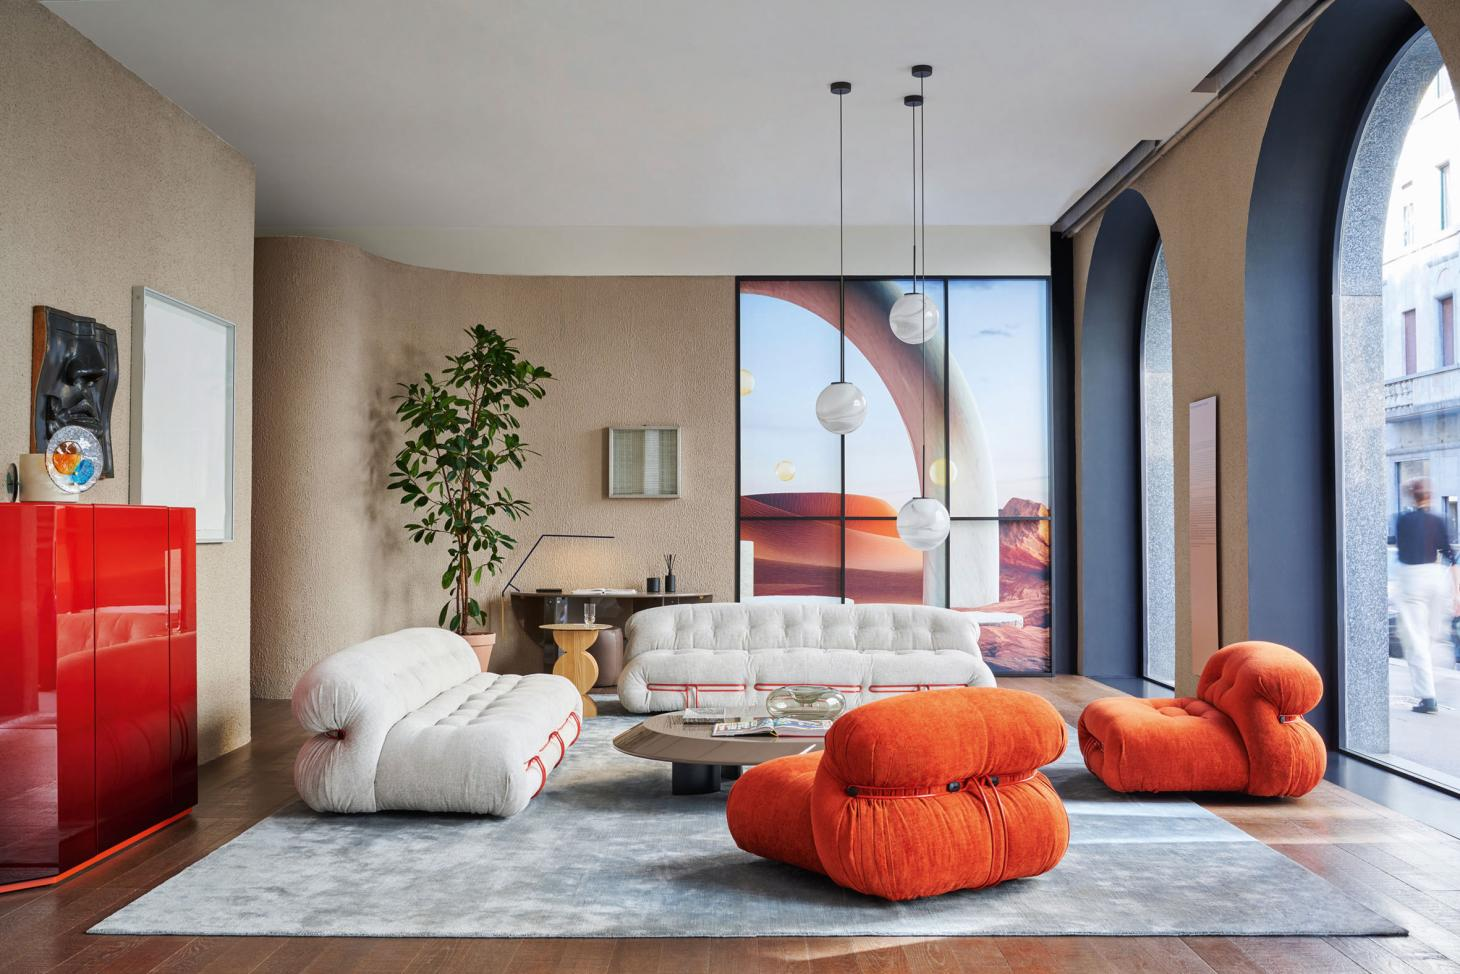 The interiors of Cassina's Milan showroom with furniture by Tobia Scarpa Salone del Mobile 2021 - Discover Milan Design Week 2021